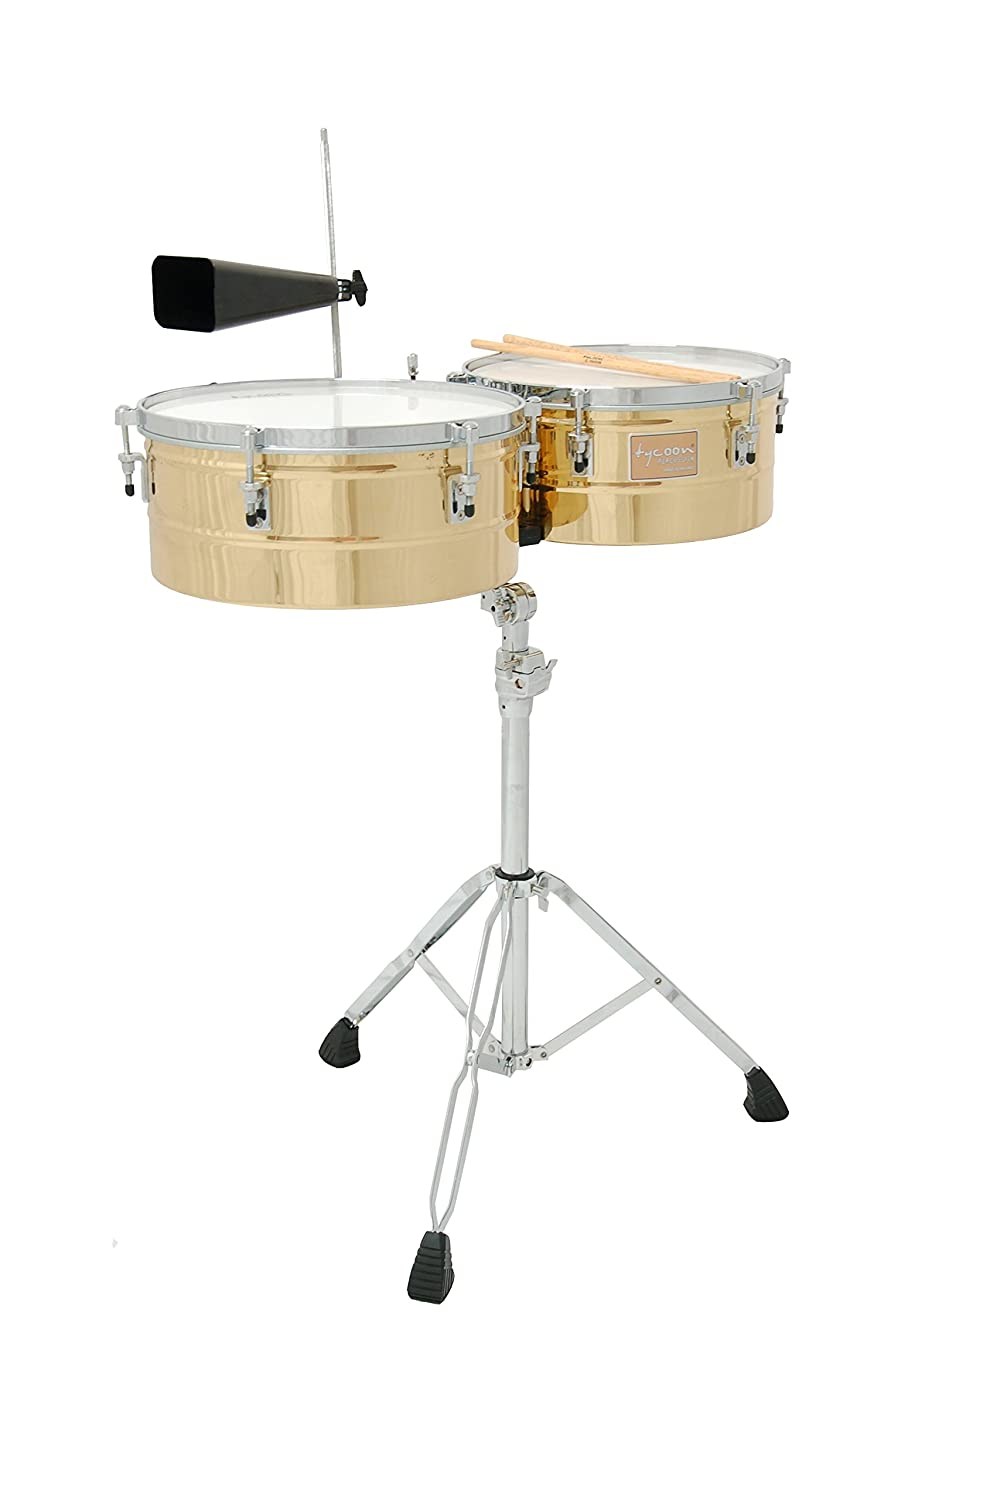 Tycoon Percussion 14 Inch & 15 Inch Brass Shell Timbales TTI-1415 BRS